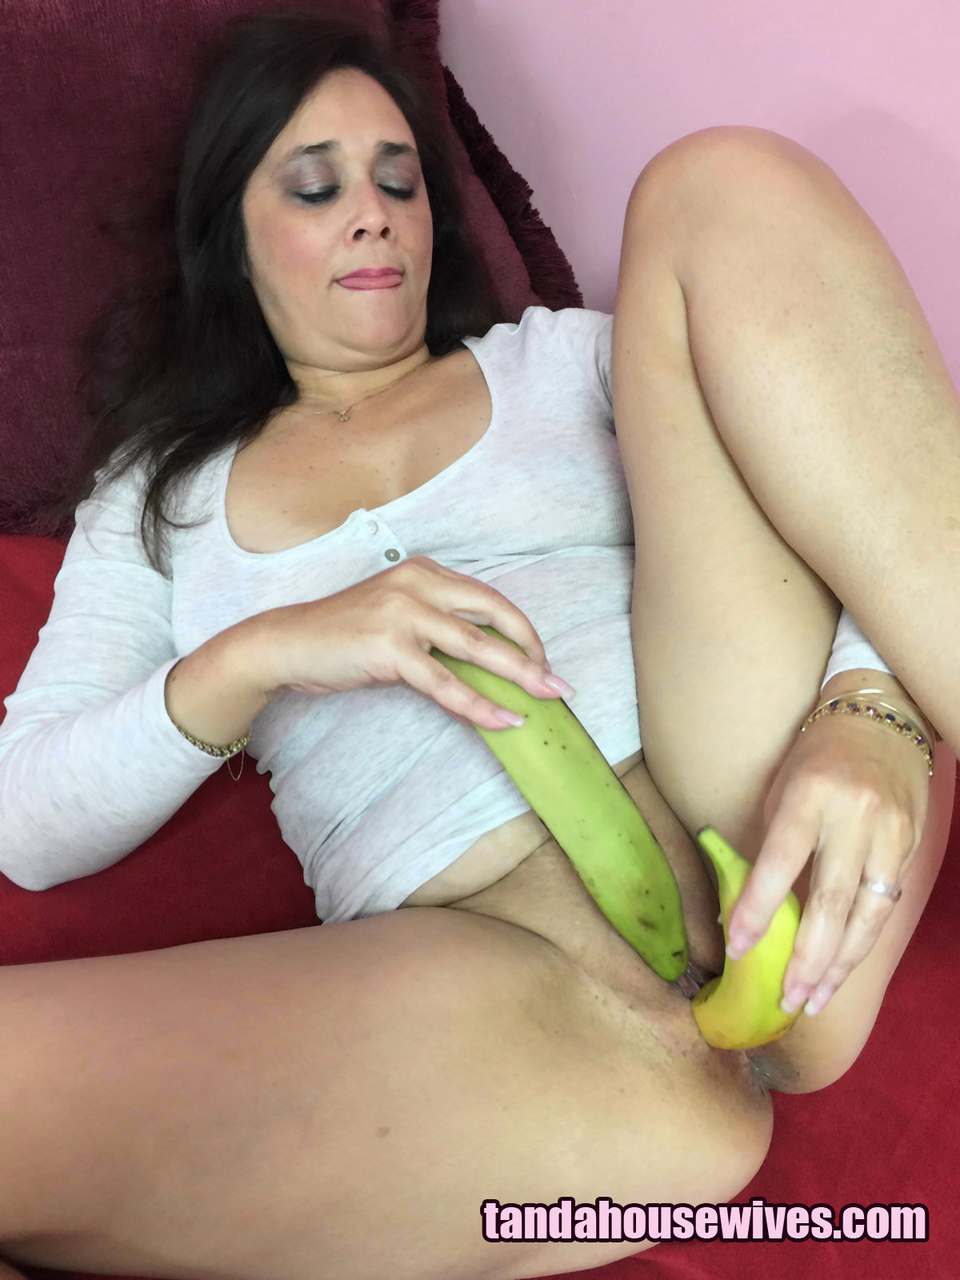 Young russian wife playing with banana